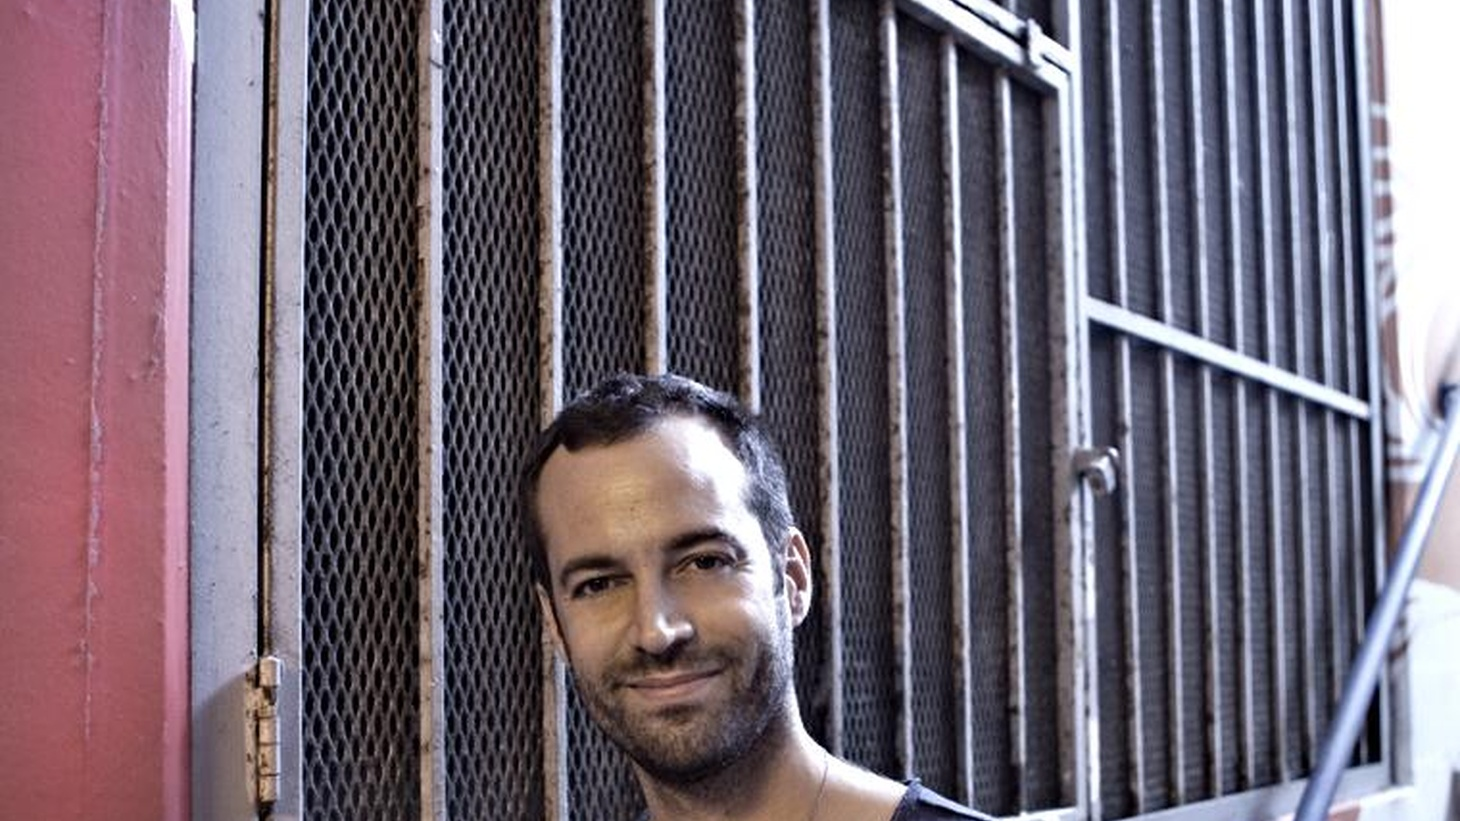 Benjamin Millepied is a French ballet dancer and choreographer, who starred in the movie Black Swan and founded the LA Dance Project. Music is a vital part of his process and he talks about composers who revolutionized music, as well as the tunes that encouraged him to pursue his dreams in America, and make his move from New York to LA.